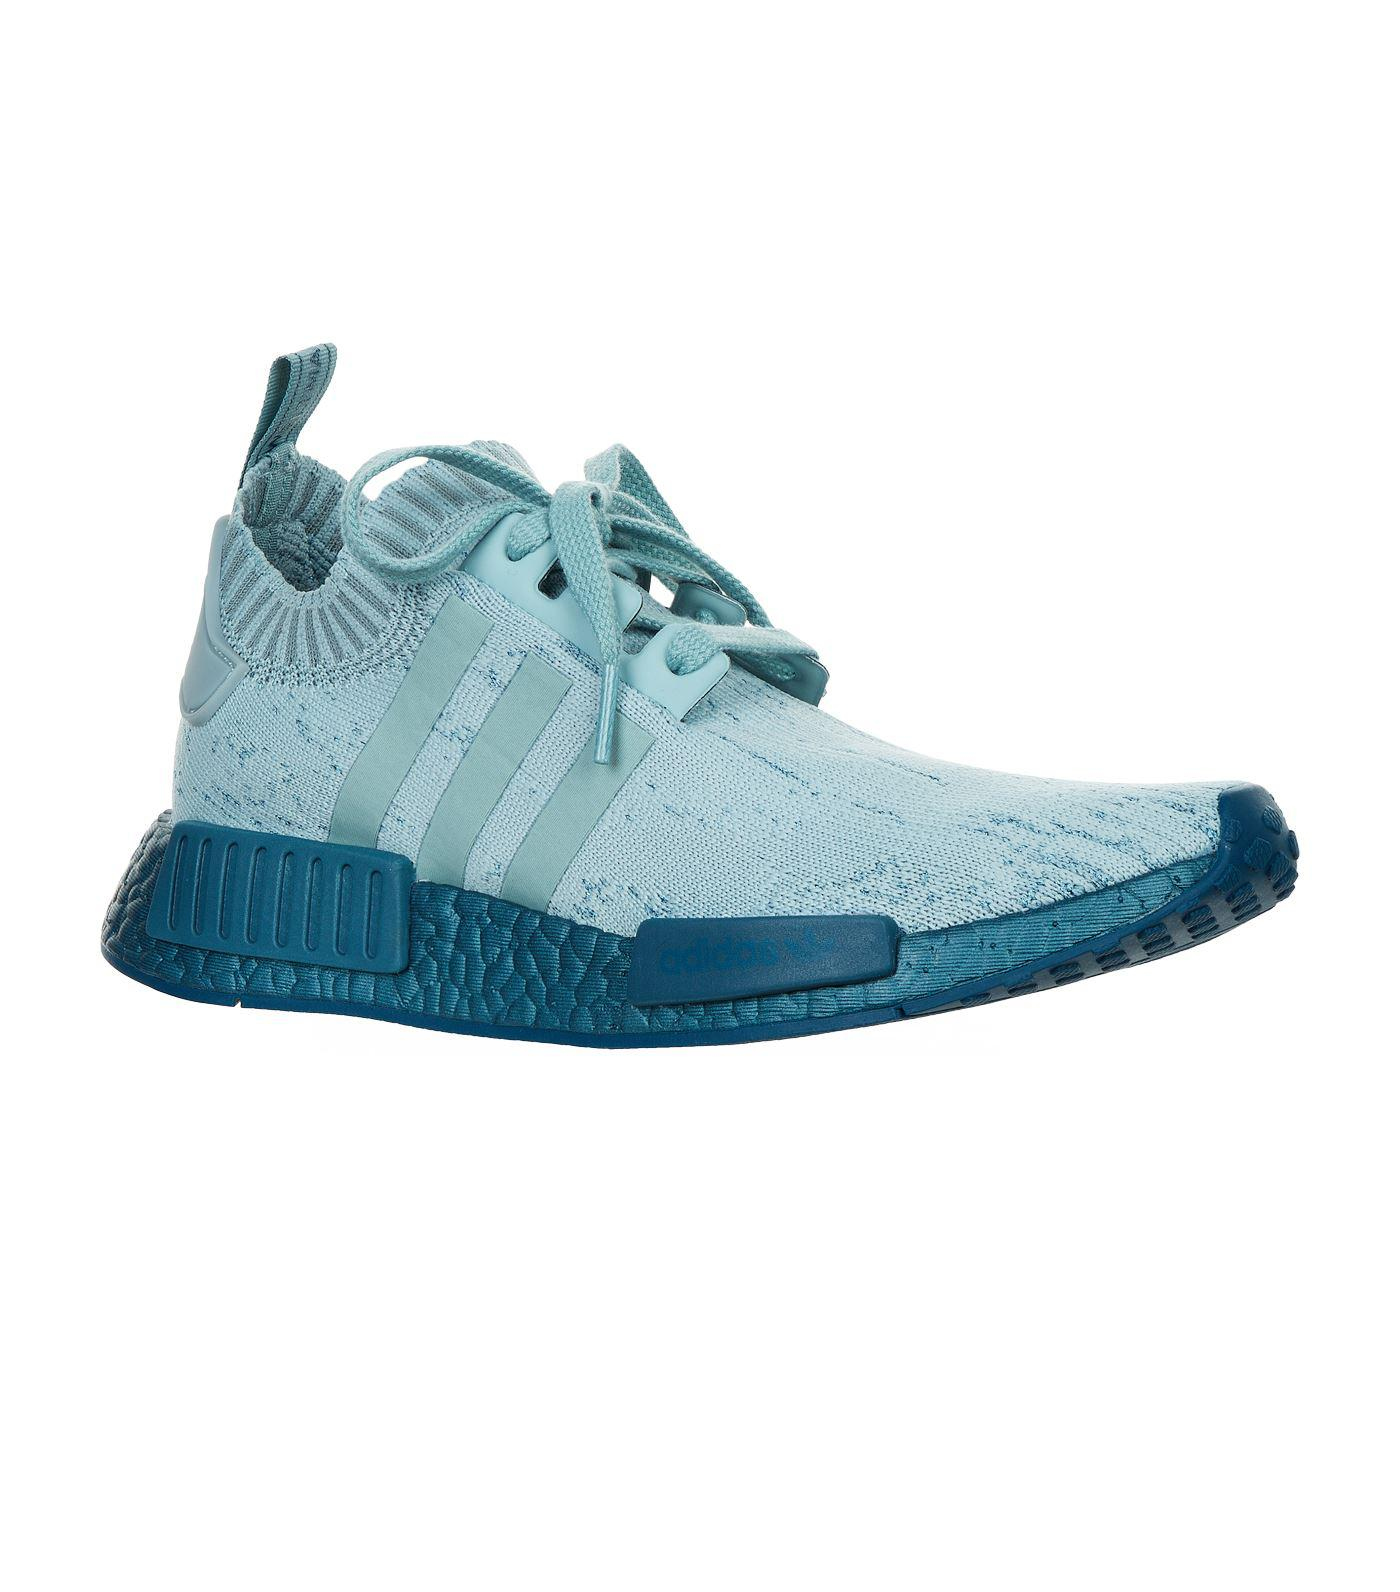 hot sale online 95af2 a3104 Lyst - adidas Originals Nmd R1 Primeknit Sneakers in Green